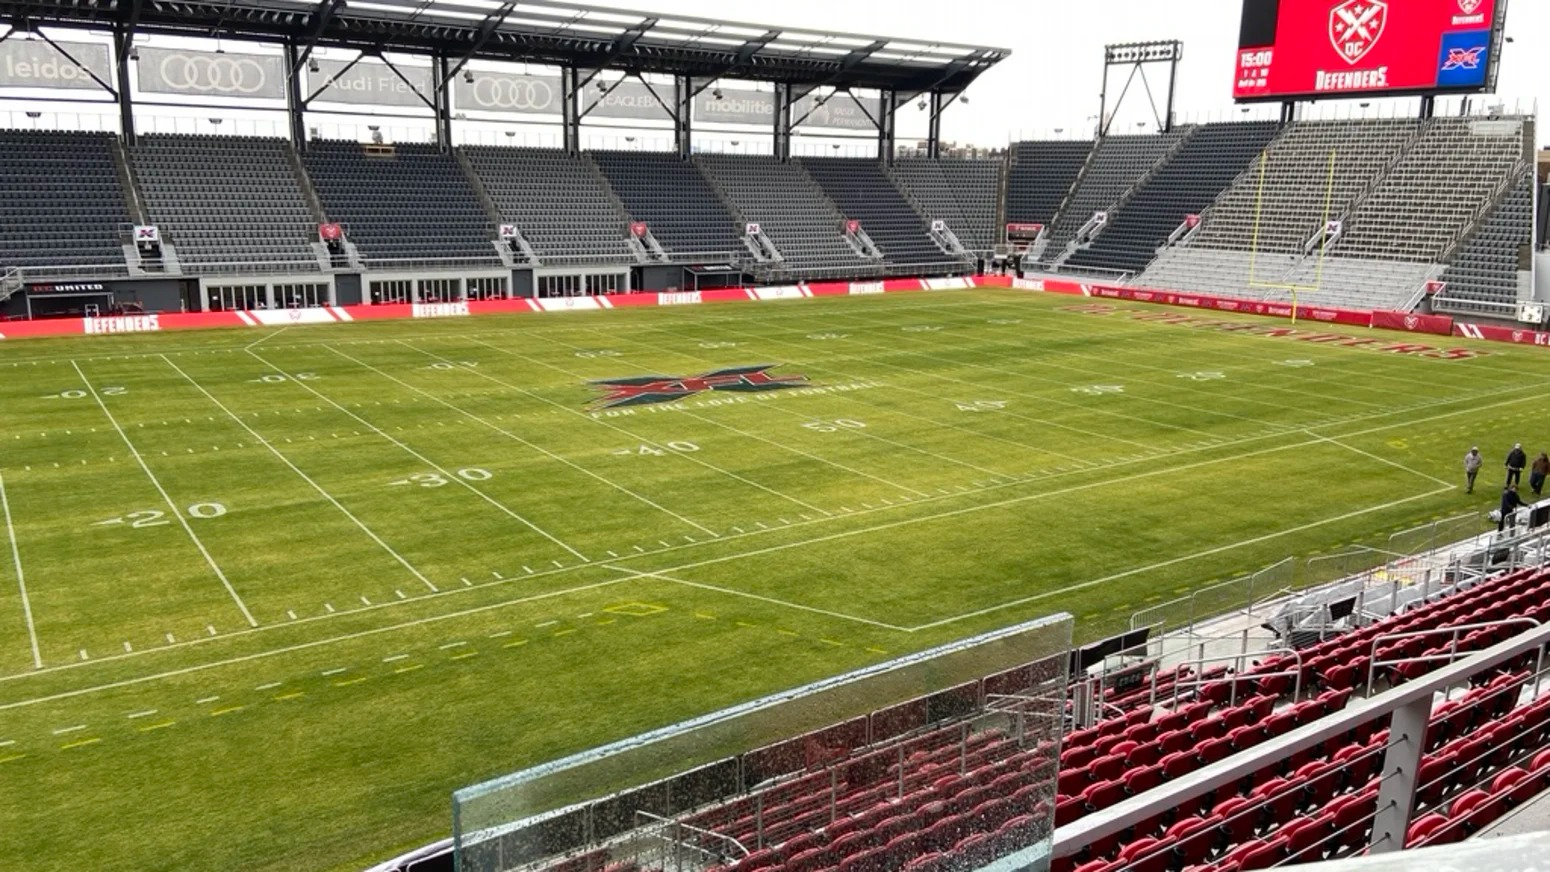 Audi Field in Washington, DC is ready for some ffootball!